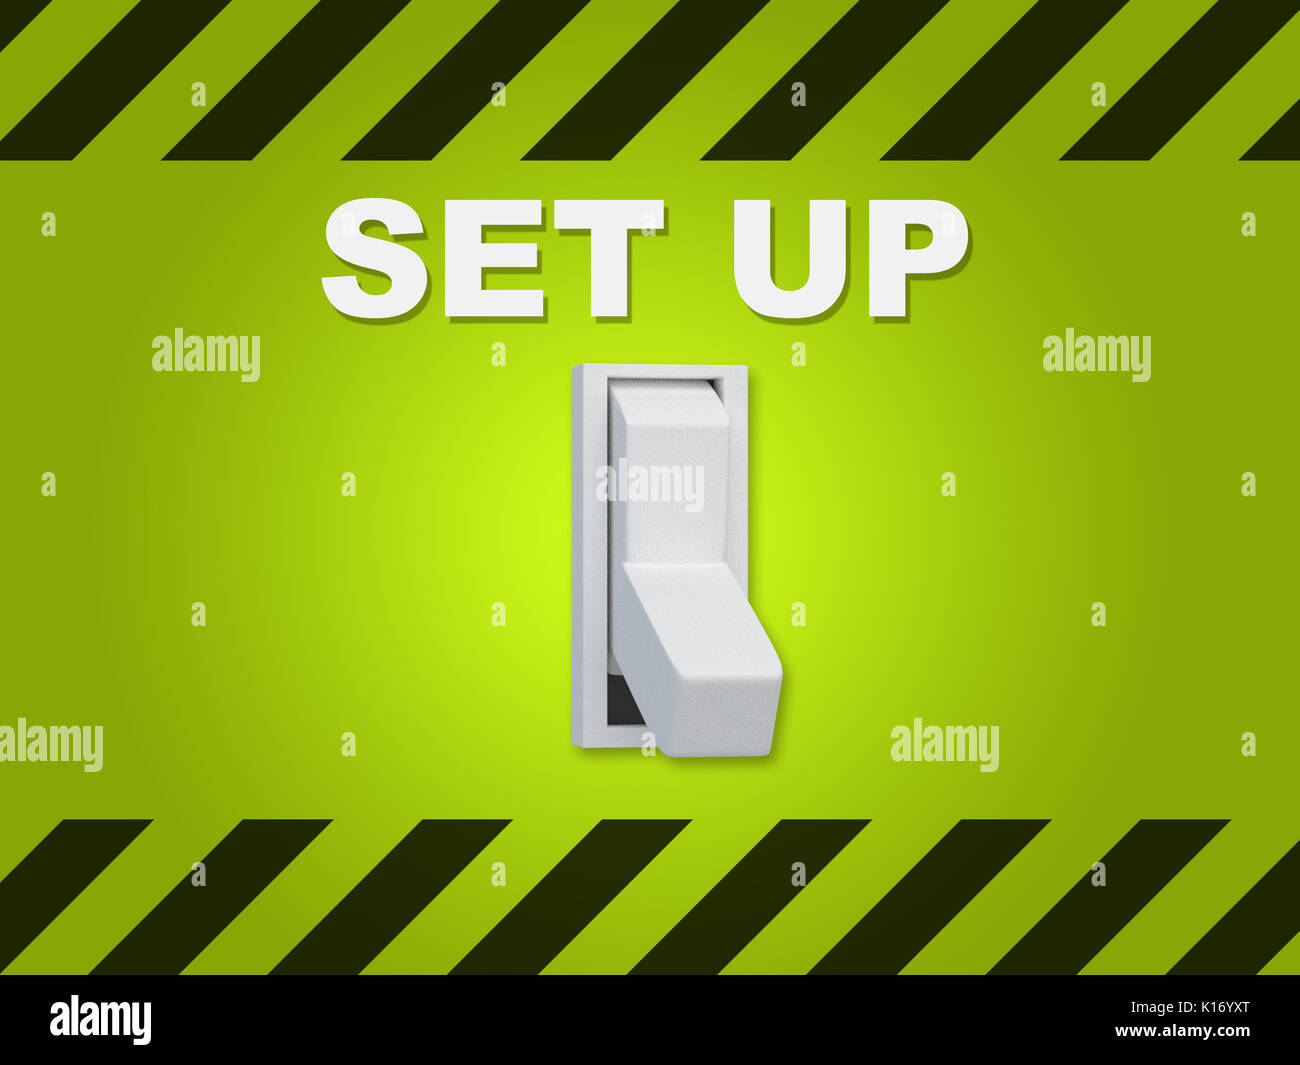 3D illustration of 'SET UP' title above an electric switch on green wall - Stock Image